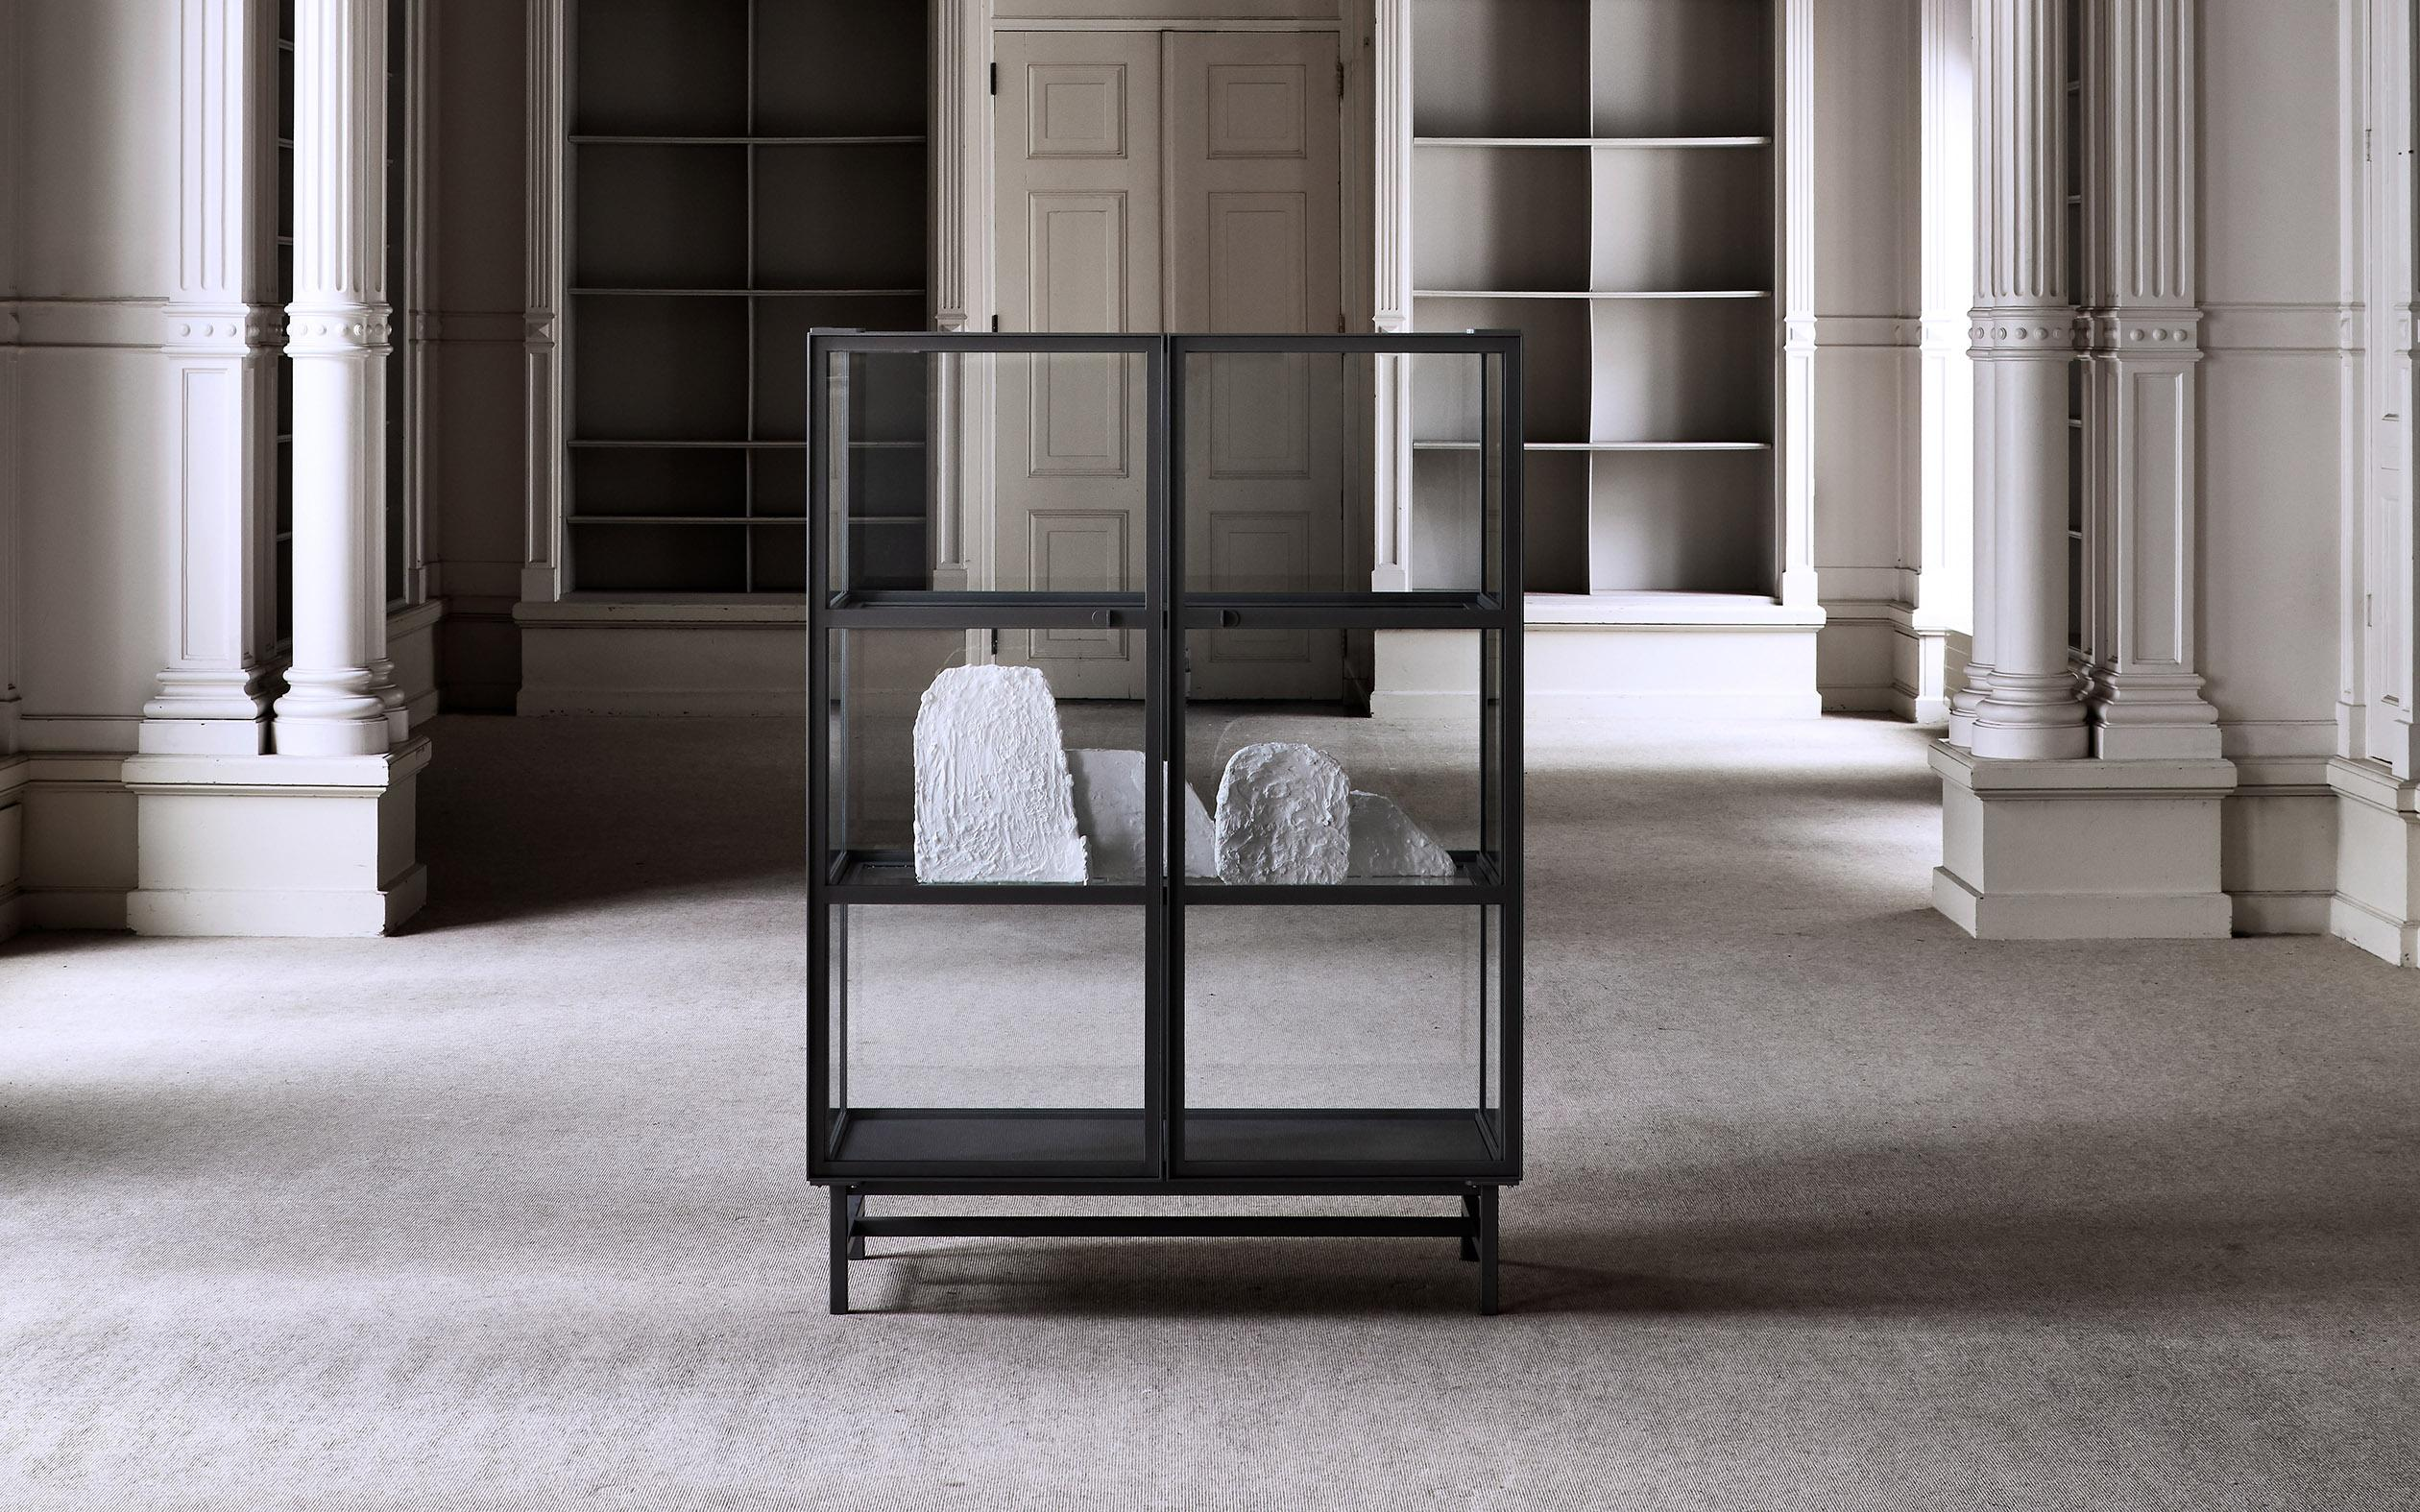 FINN cabinet with styling at Palace of Justice Amsterdam